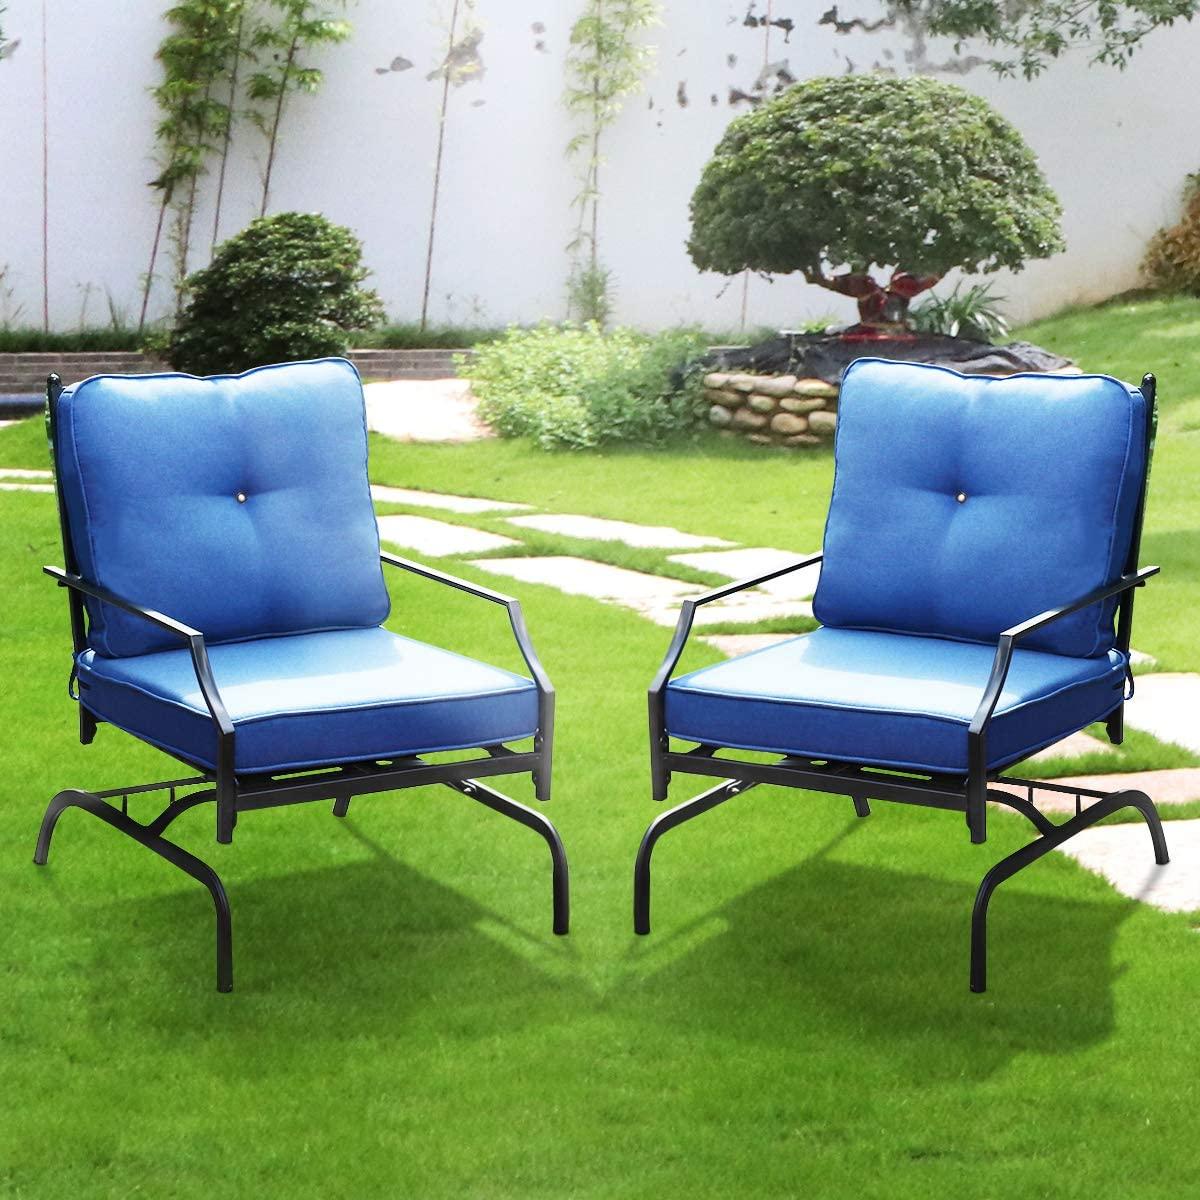 Rocking Patio Chair Outdoor Set of 2, Metal Patio Chairs with Elasticity Seat Cushions and Black Metal Frame Patio Bistro Dining Chairs Sets for Garden, Backyard and Bistro Lawn,Blue